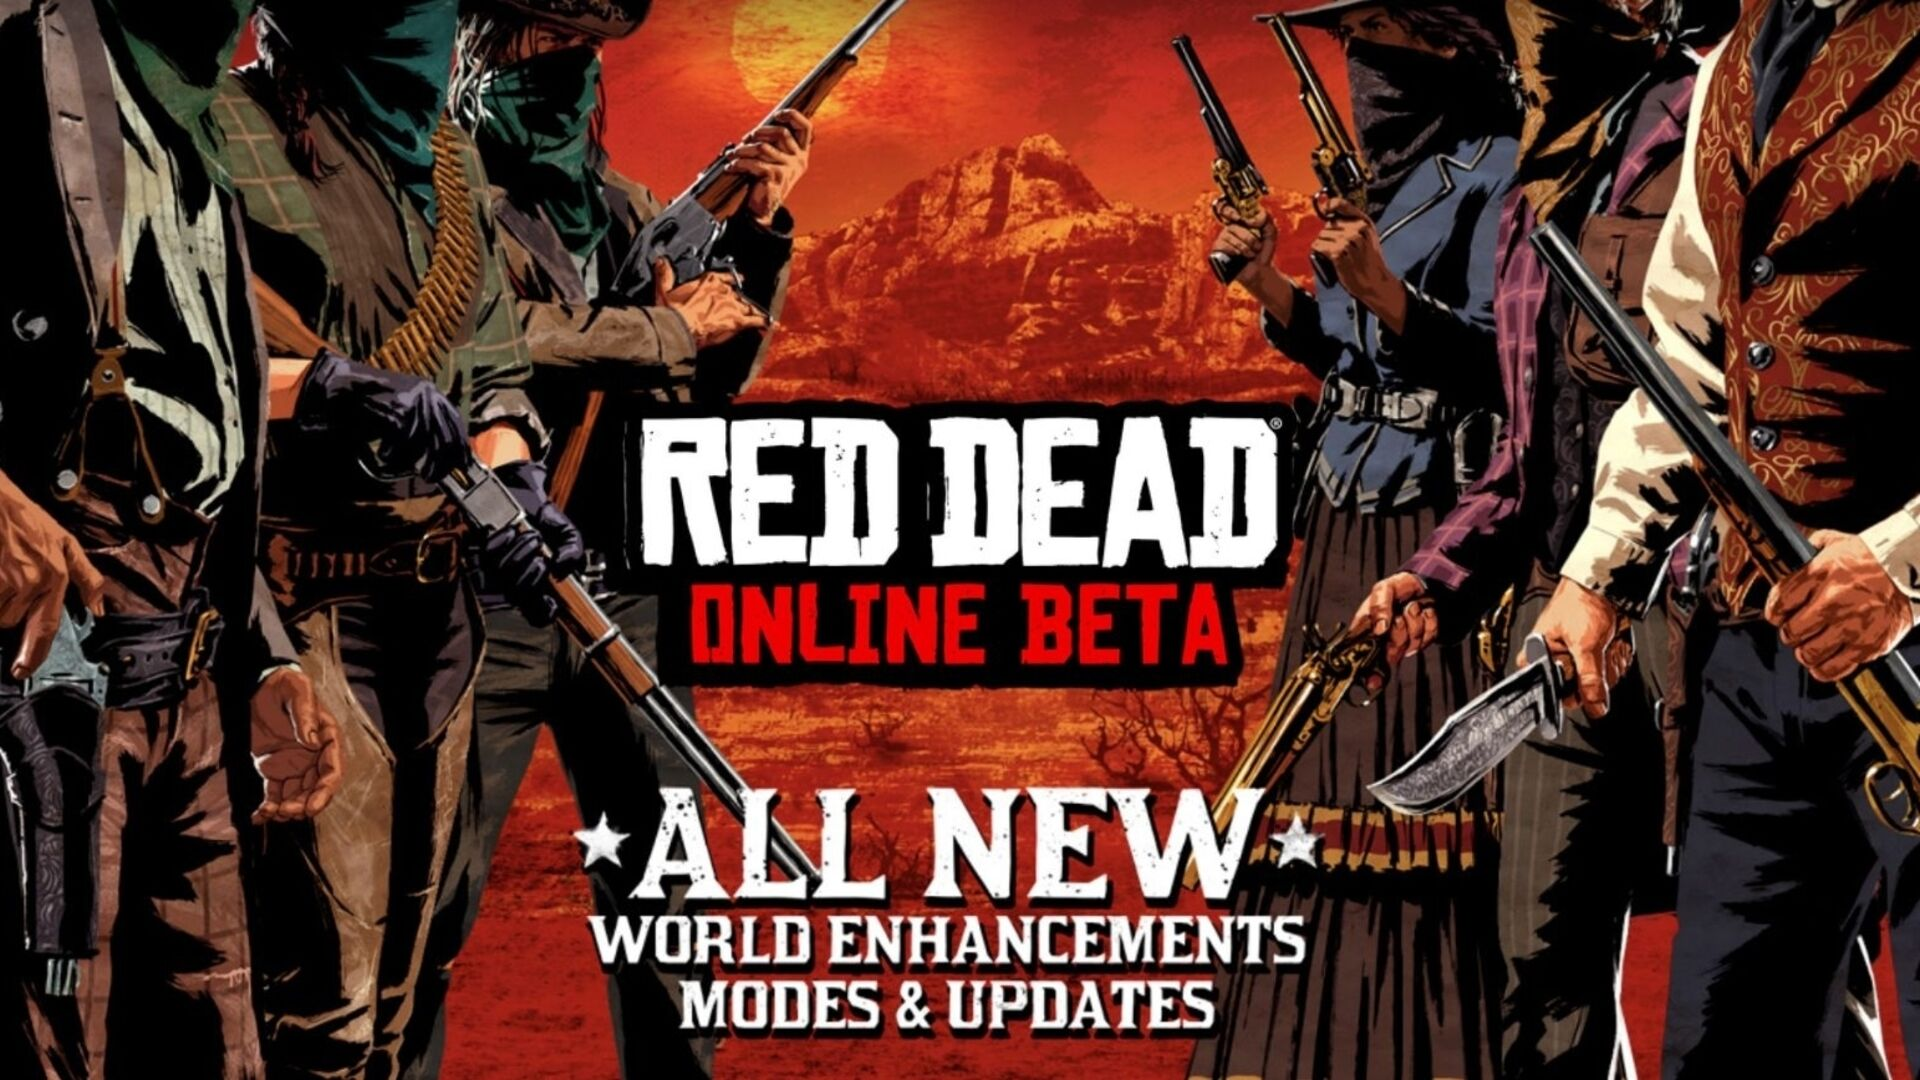 Red Dead Online update falls short of fixing griefing and economy